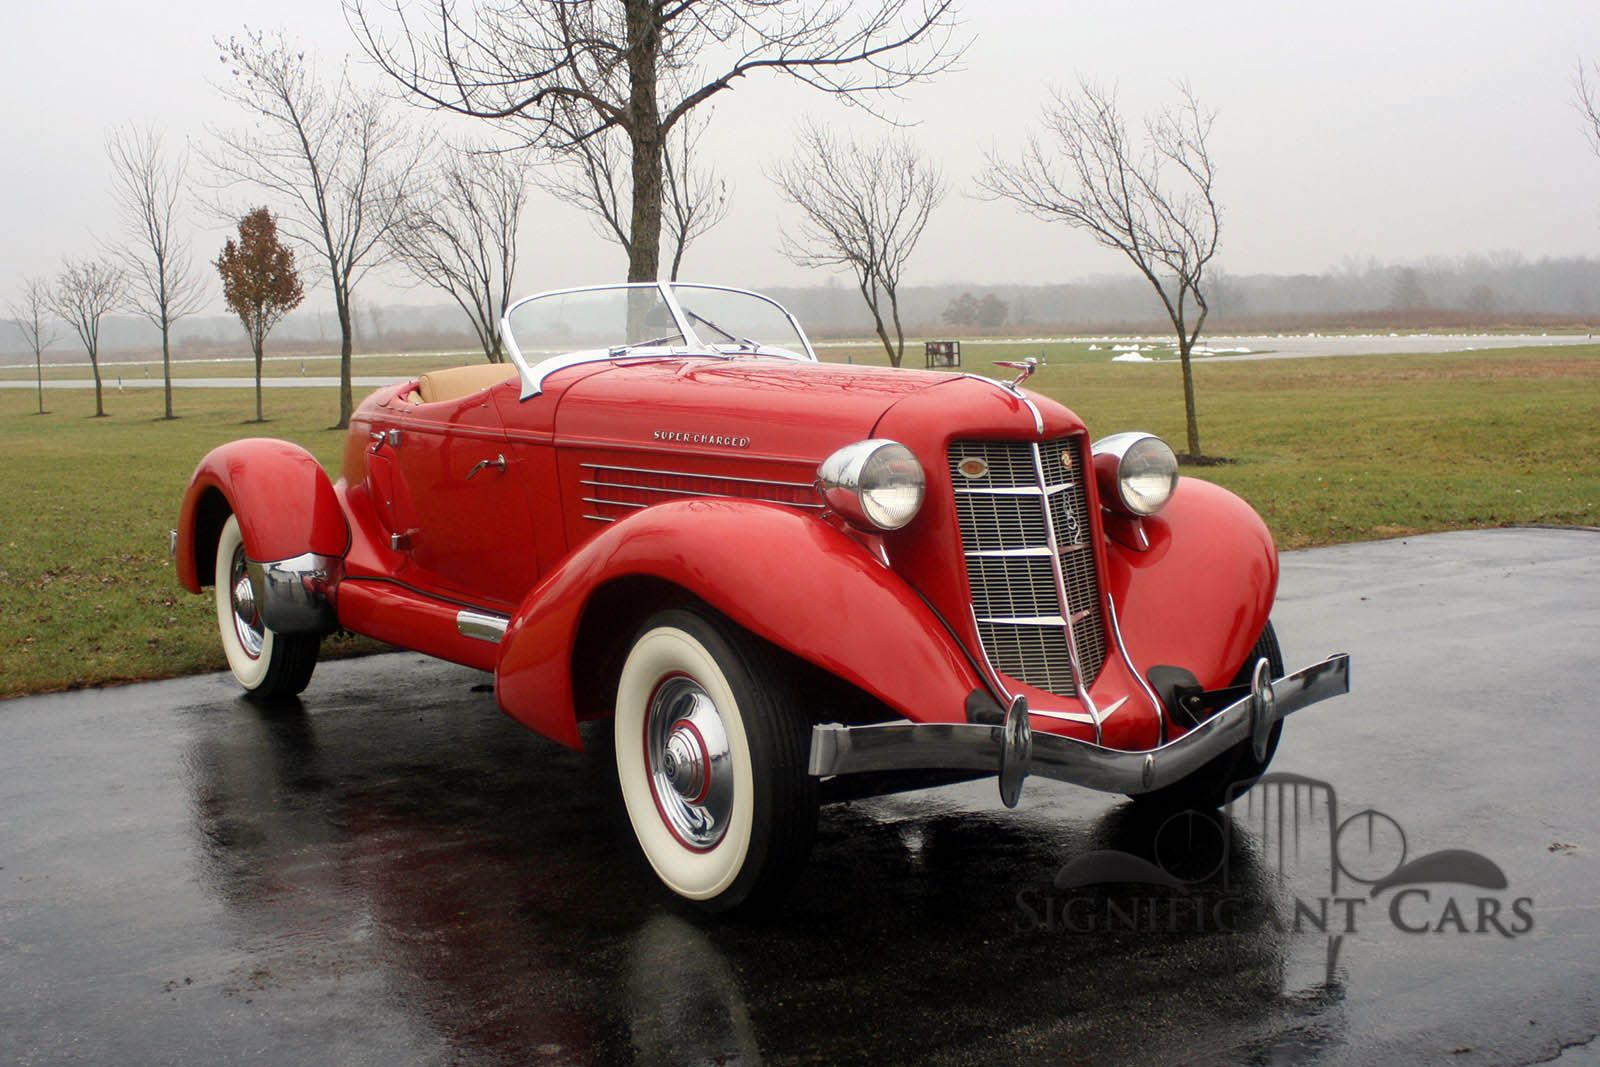 1936 Auburn Boattail Speedster Significant Cars, Inc